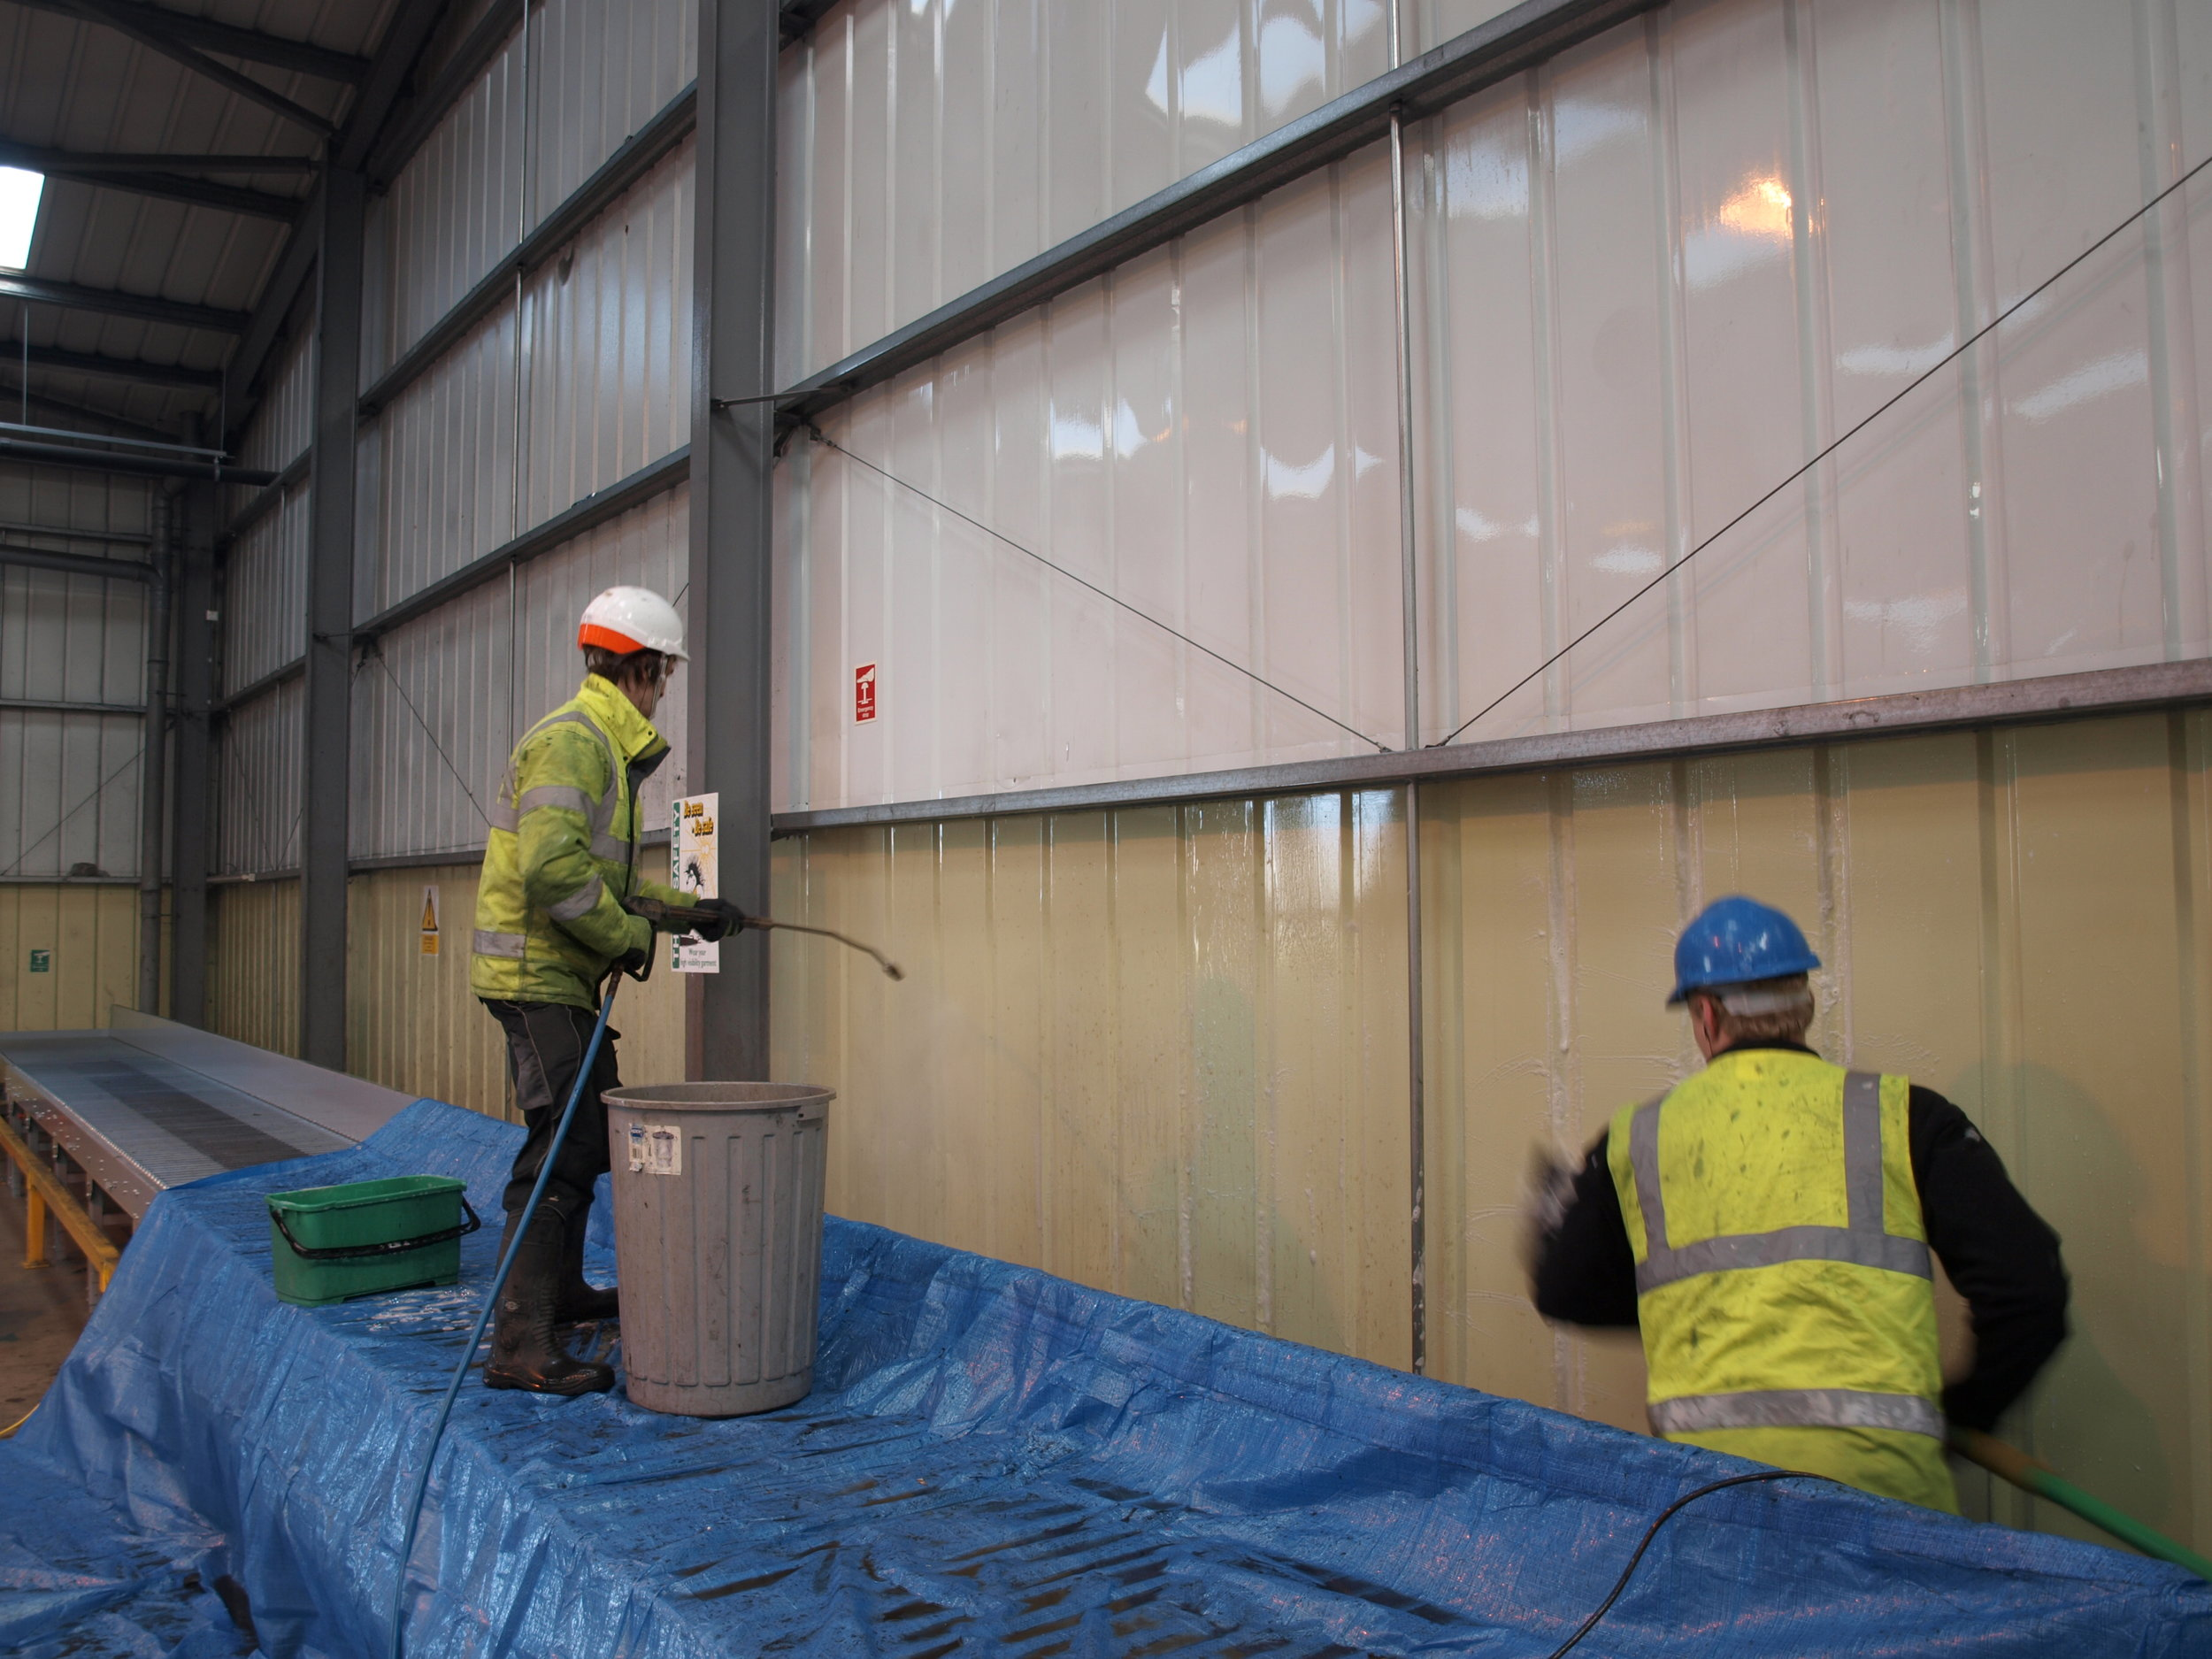 Specialist cleaning - Providing cleaning services few others can manage.